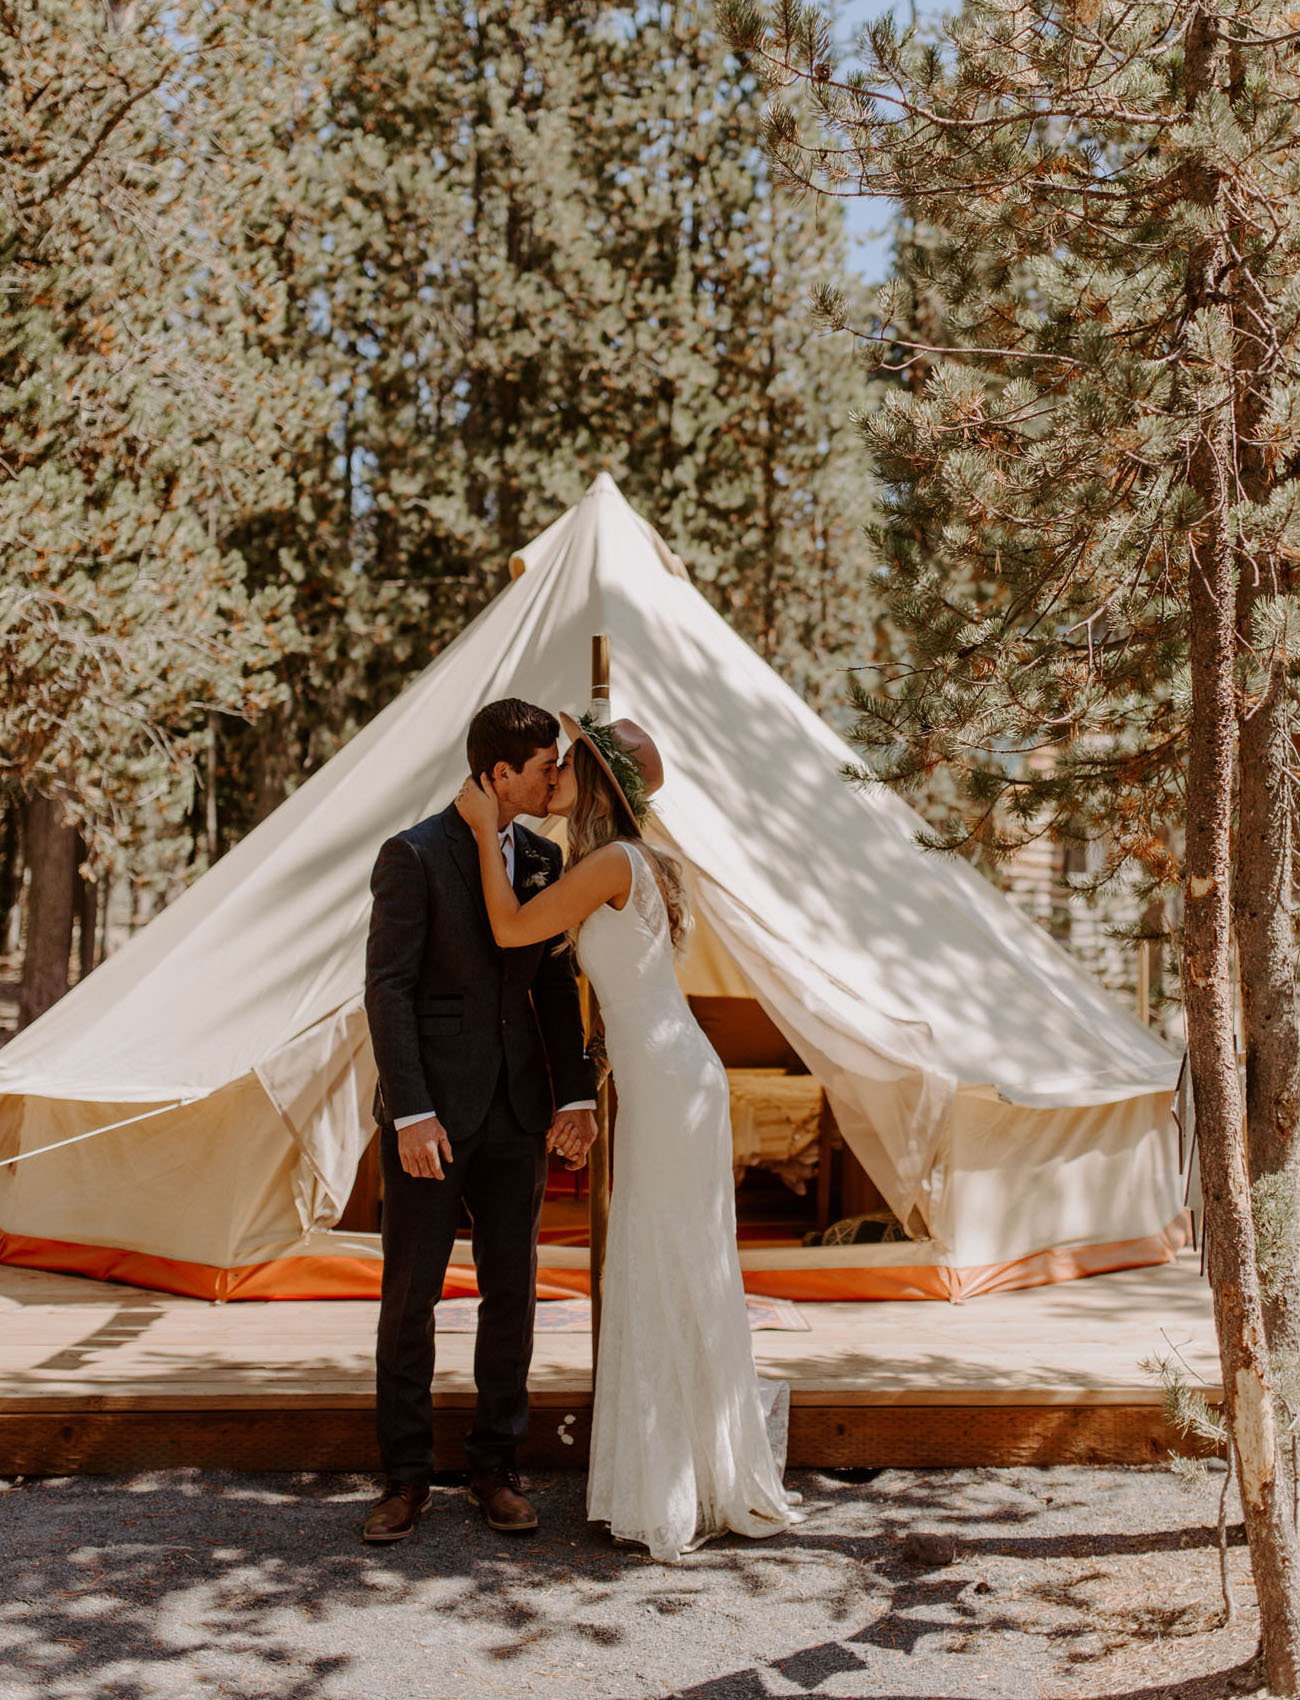 How To Throw a Camp Wedding